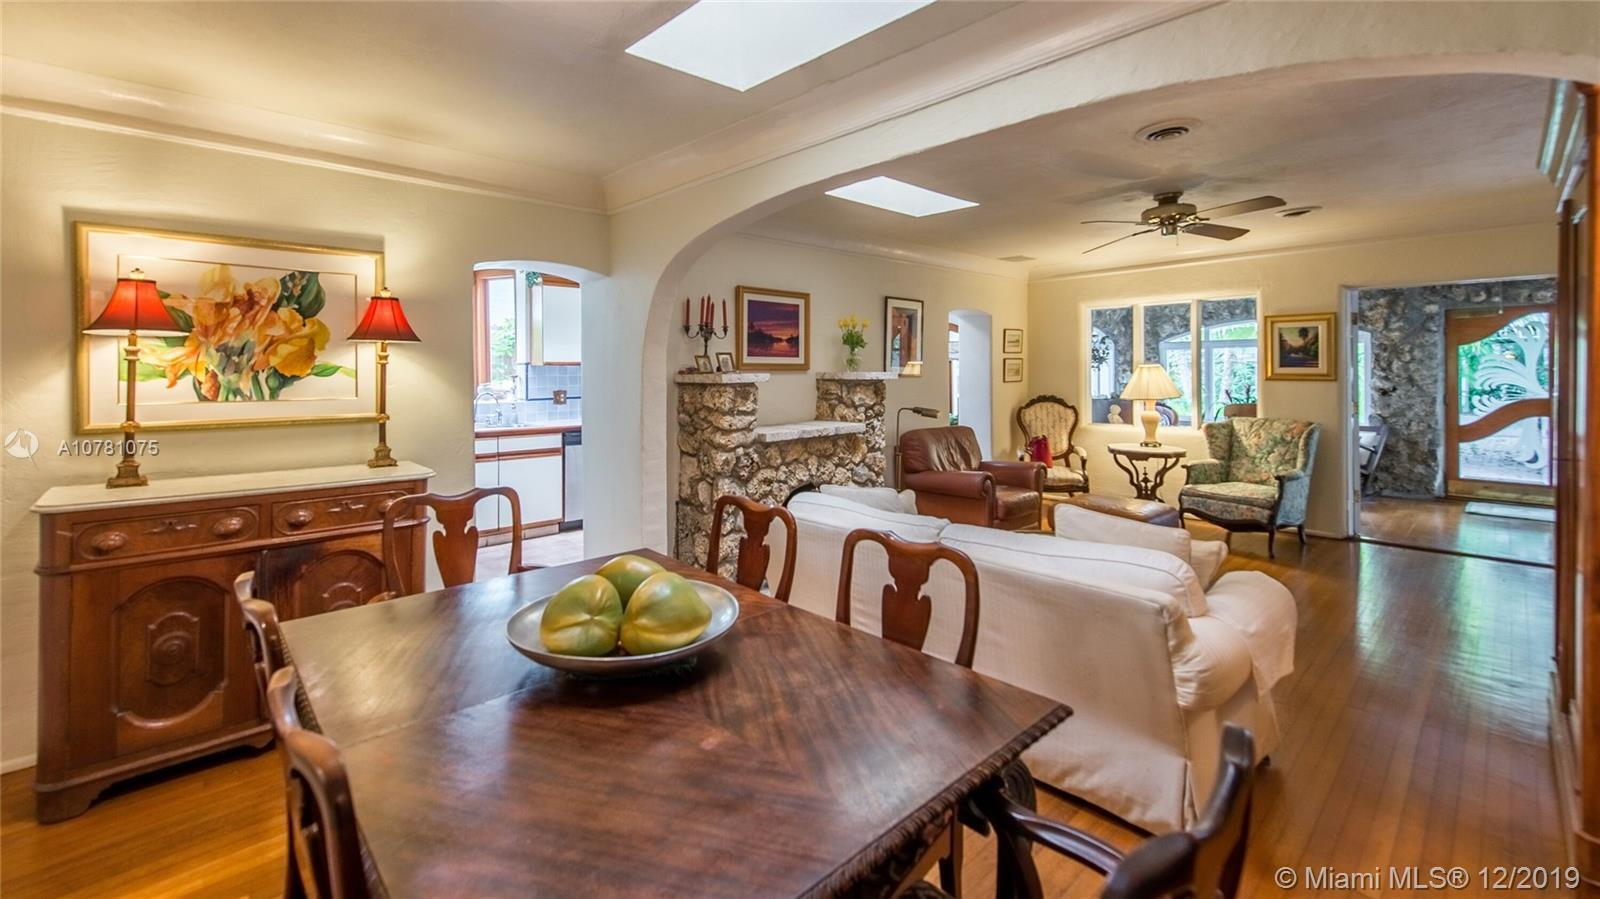 This lovely maintained 3bed/2 bath home offers all the unique beautiful features of old Spanish arch